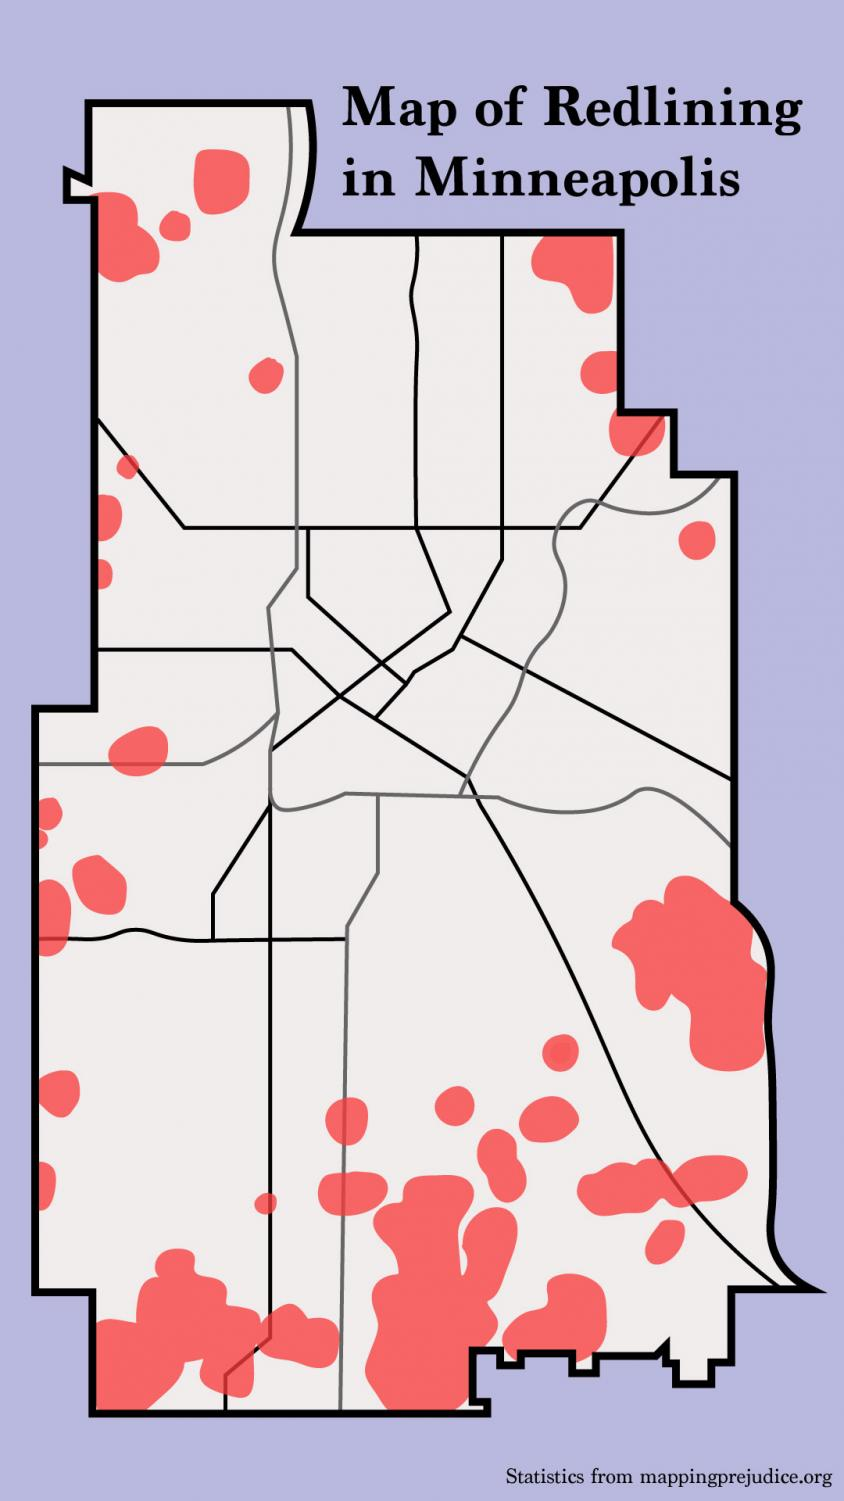 An Augsburg college study done in 2014 recorded every known instance of redlining within Minneapolis and placed them on a map of the city as a red dot. As they went through year by year of reports (from 1911-1951) the dots became blots that covered entire districts. This was what their map looked like in 1951.